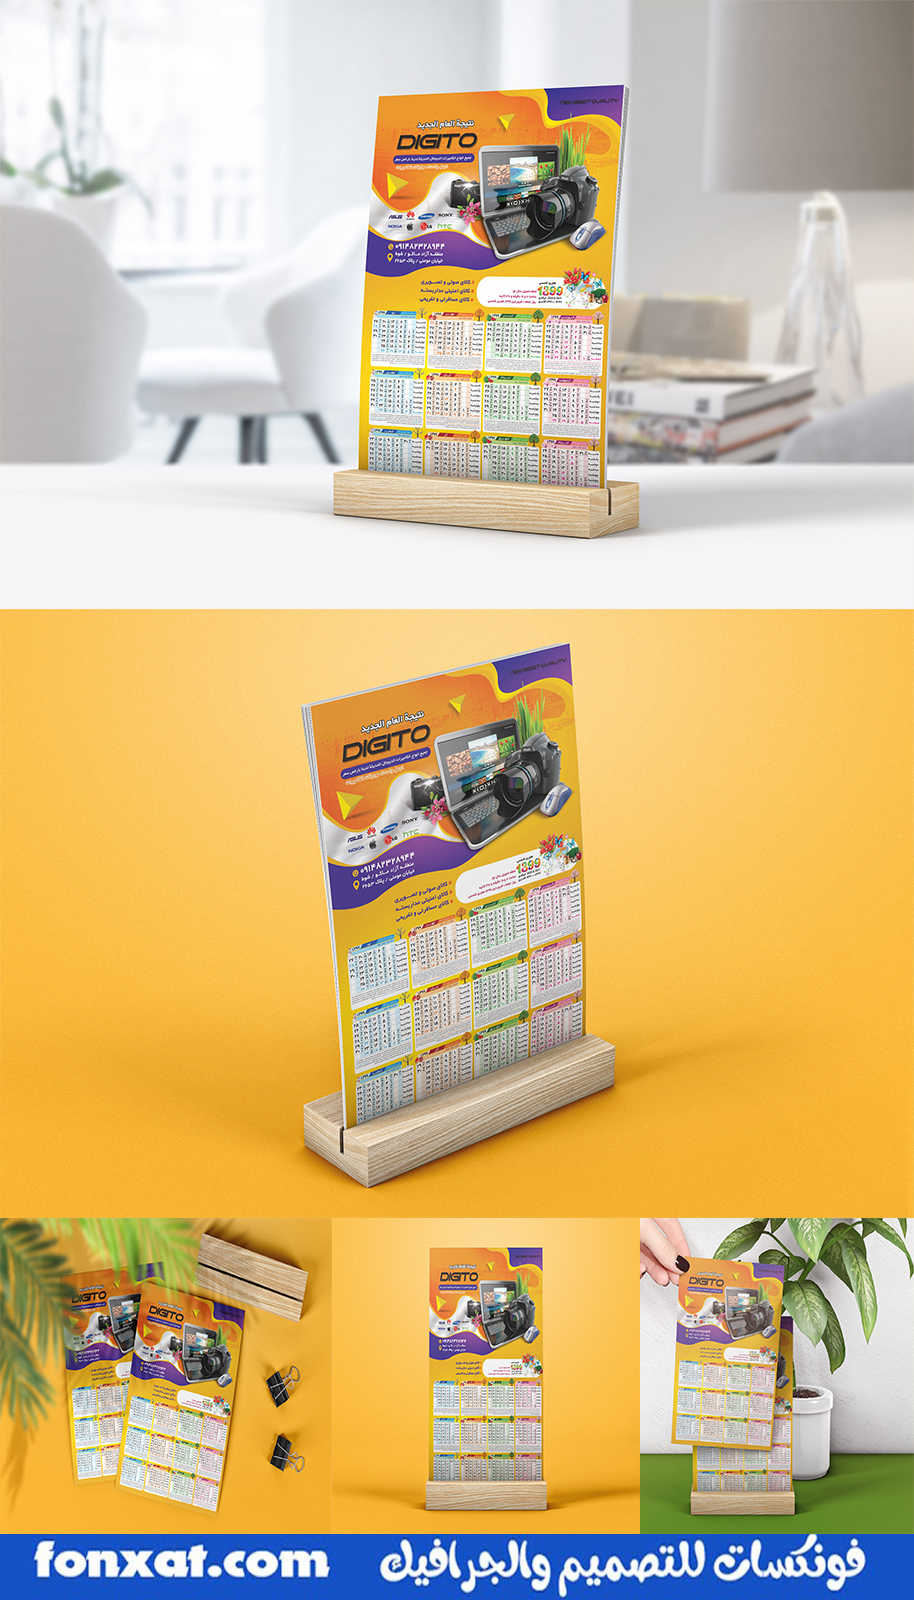 Download PSD mockup to professionally display results designs or flyers